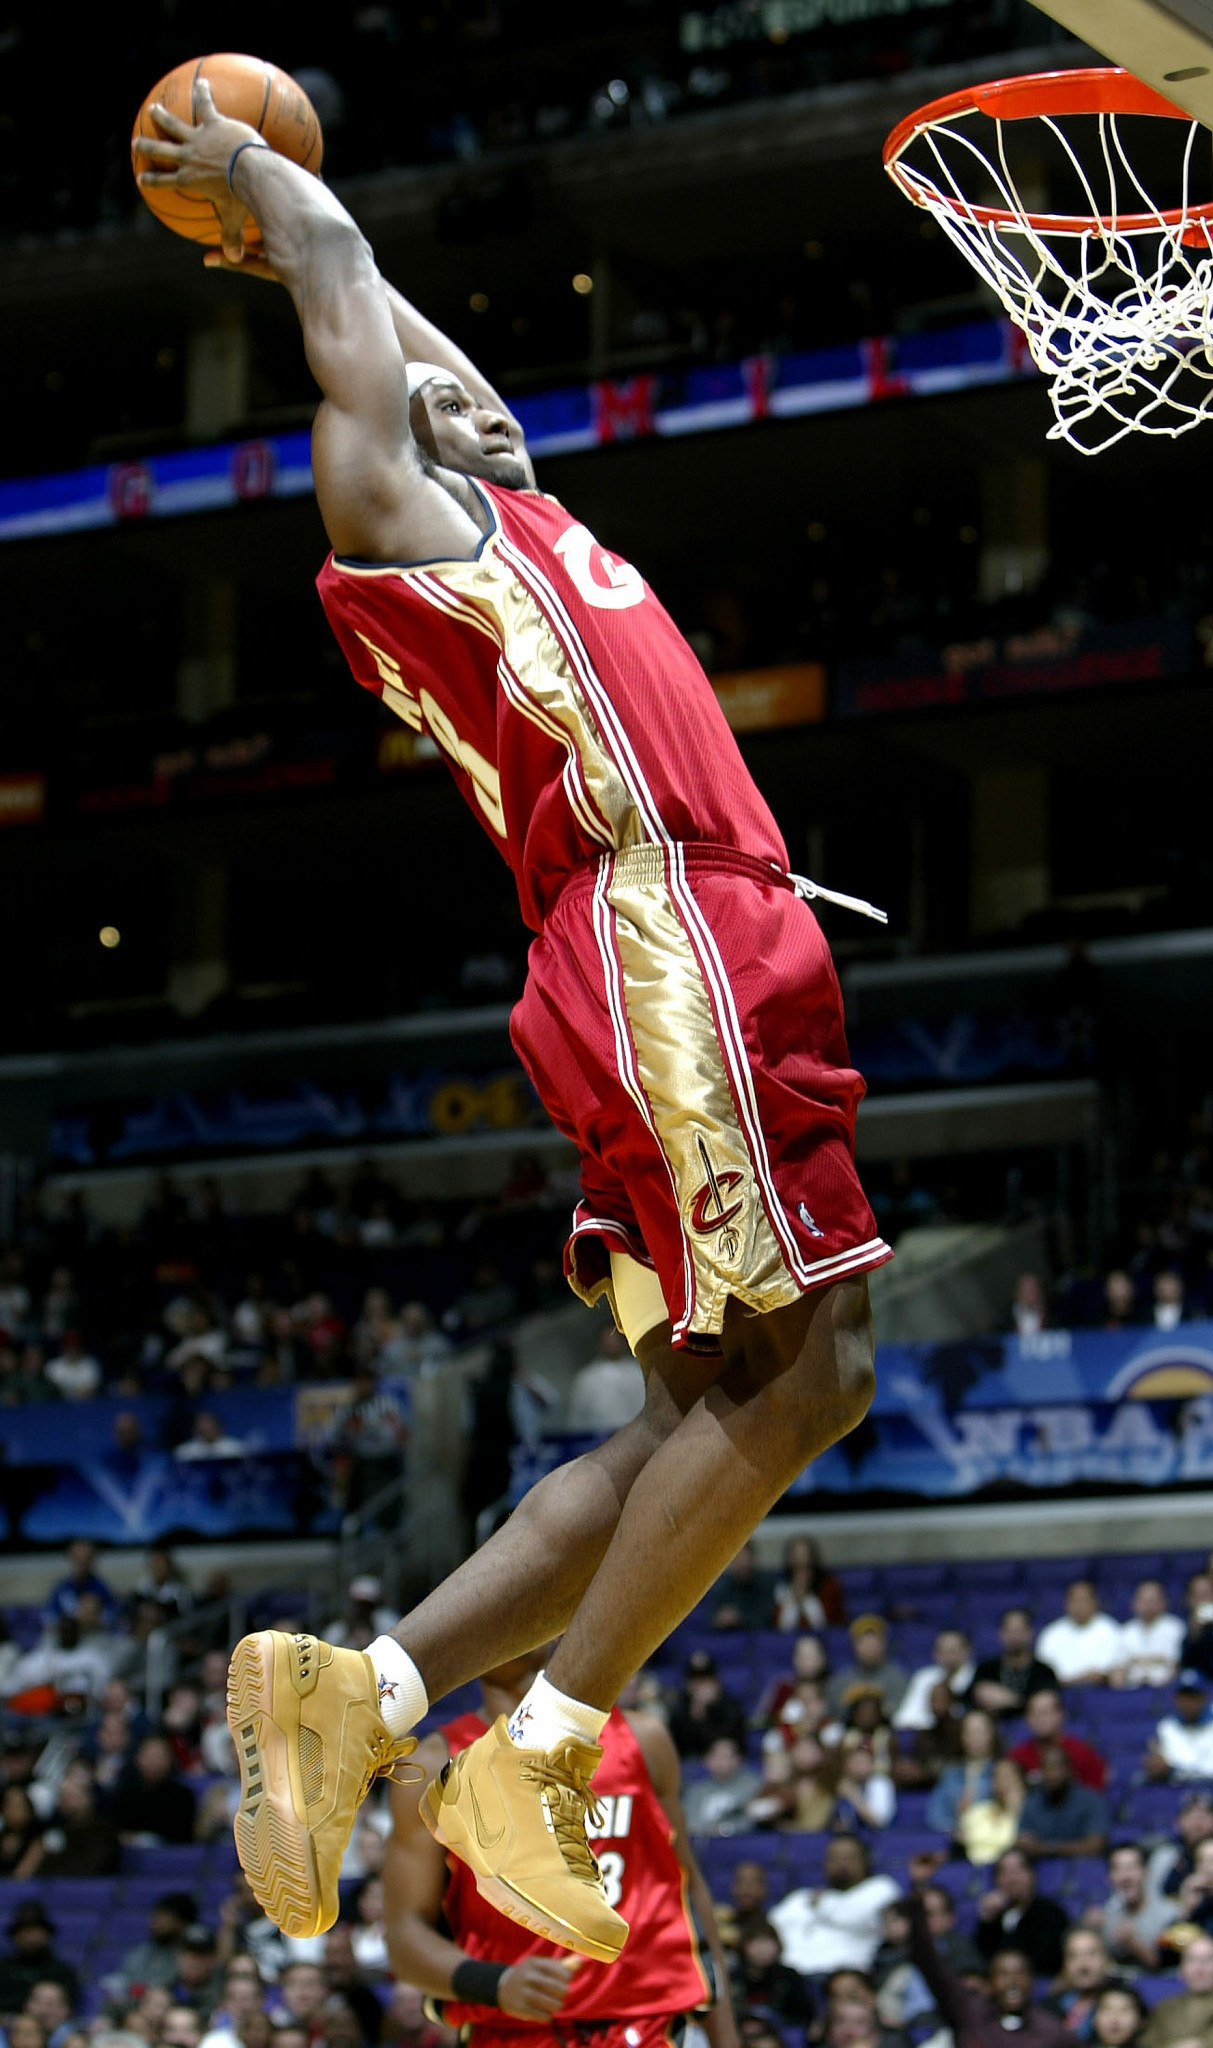 The LeBron James card which has sold for a record price of $1.8 million was issued in his rookie season with the Cleveland Cavaliers in 2003-2004 ©Getty Images